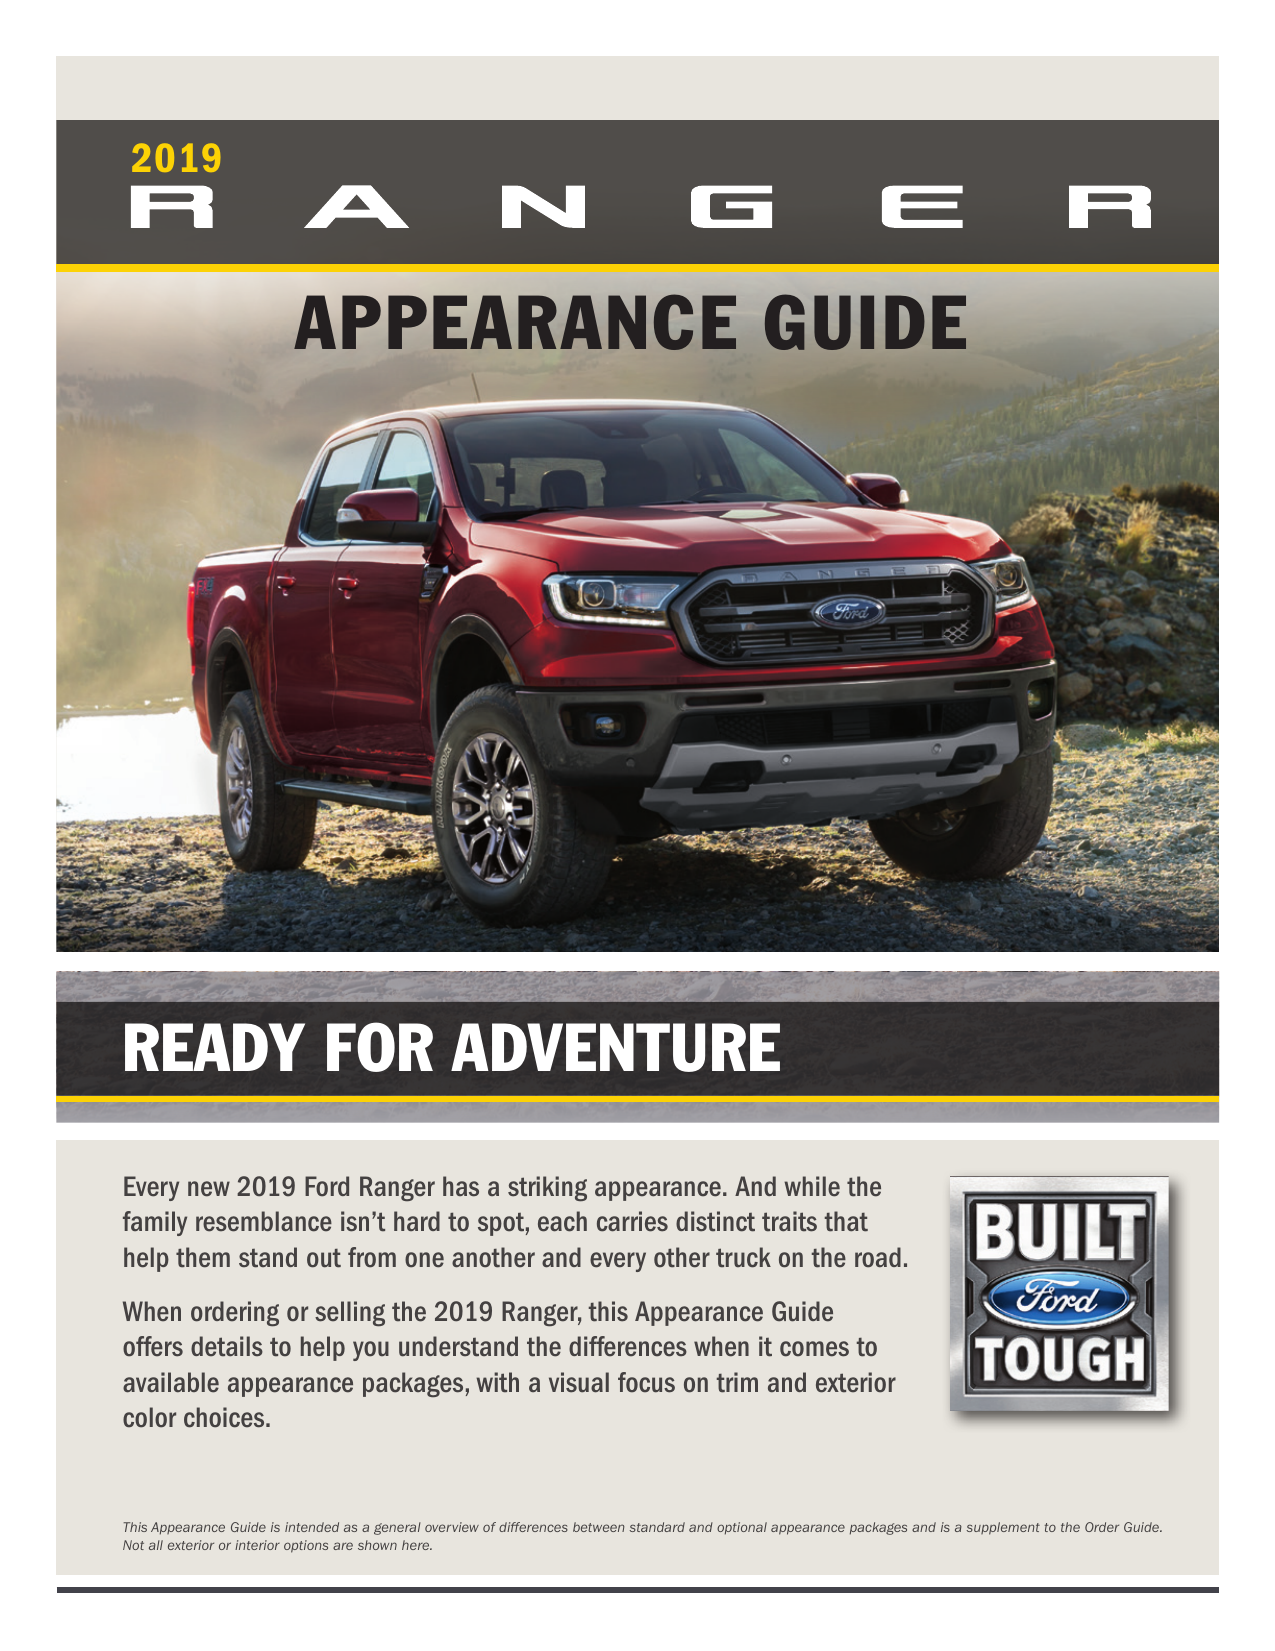 2019 Ranger Appearance Guide-01.png